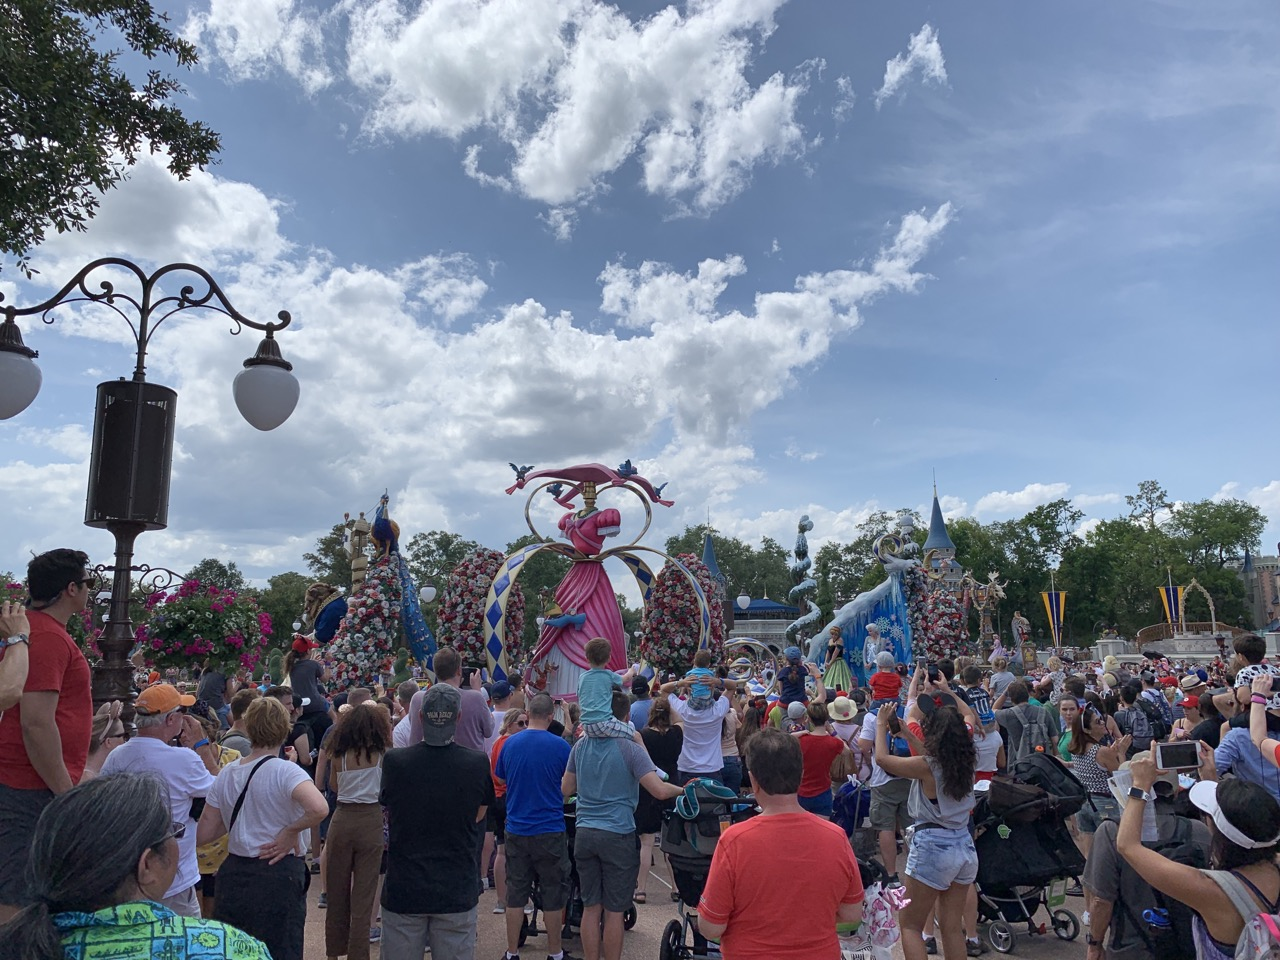 disney world trip report early summer 2019 day five 52 parade.jpeg